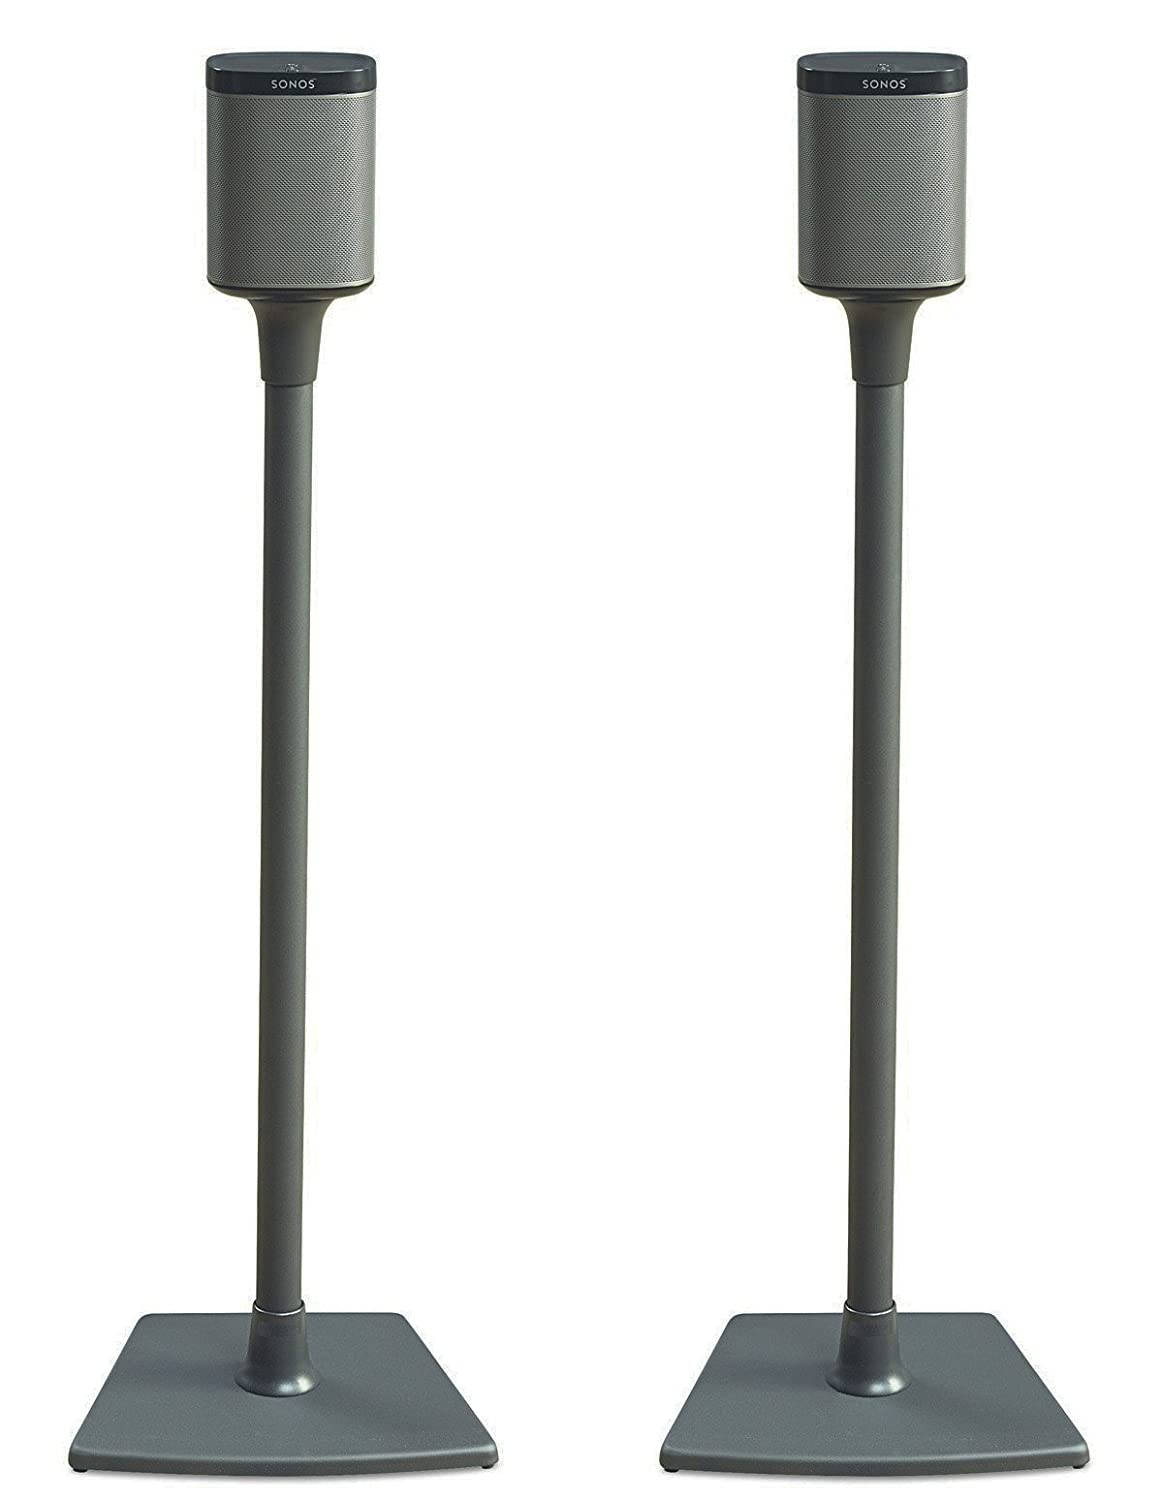 Sanus WSS2-B1 Wireless Speaker Stand Designed for SONOS PLAY 1 and PLAY 3 Speakers 2 Pack Black Tjernlund Products - Audio